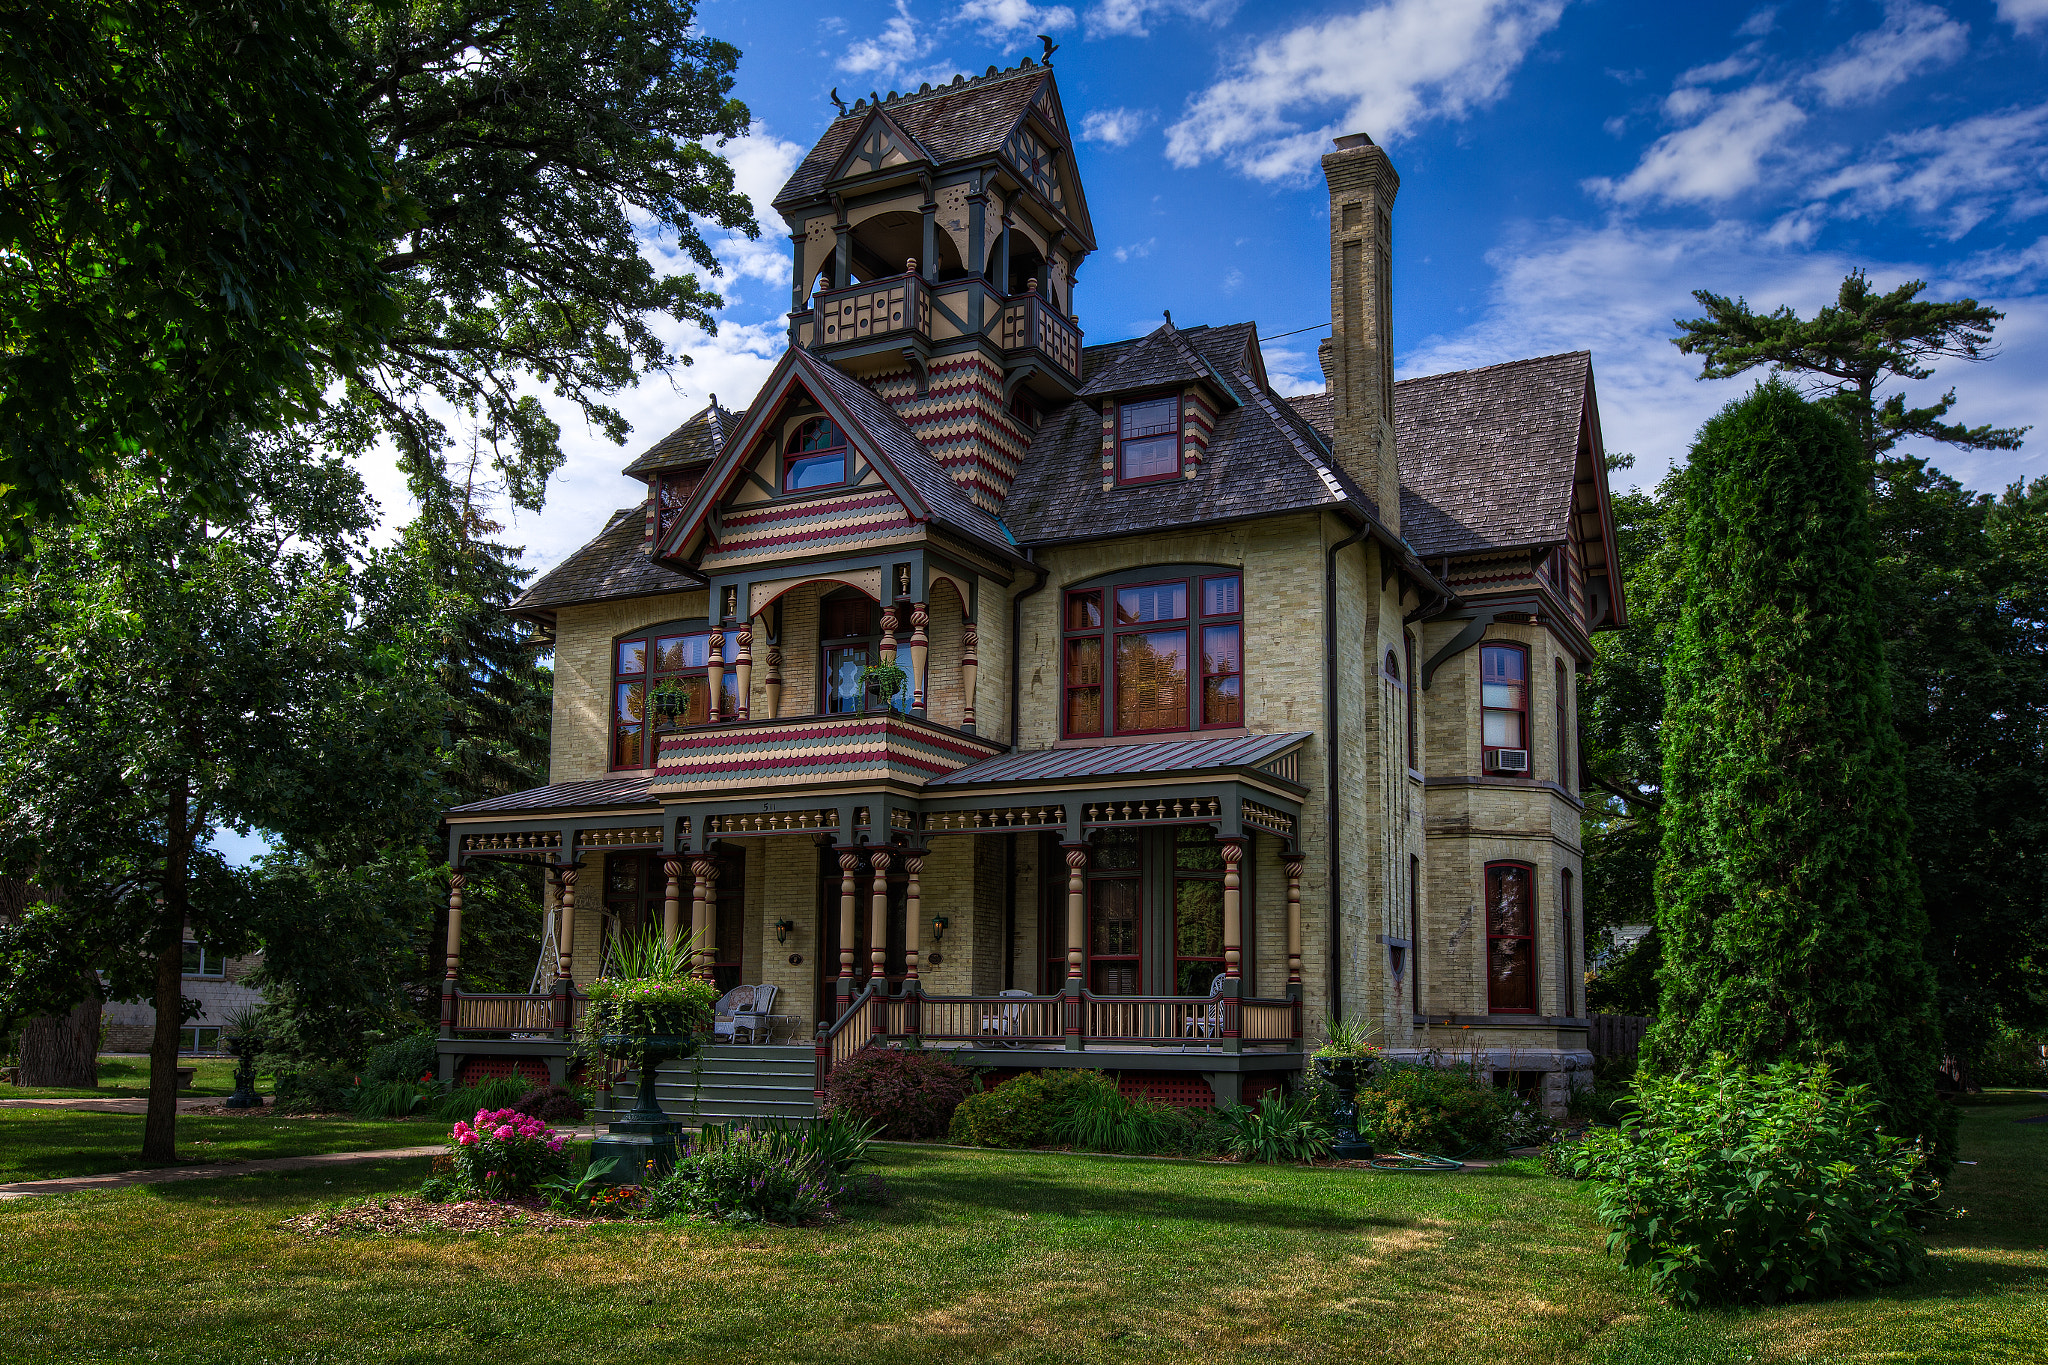 Photograph The Allyn Mansion by Brian Behling on 500px